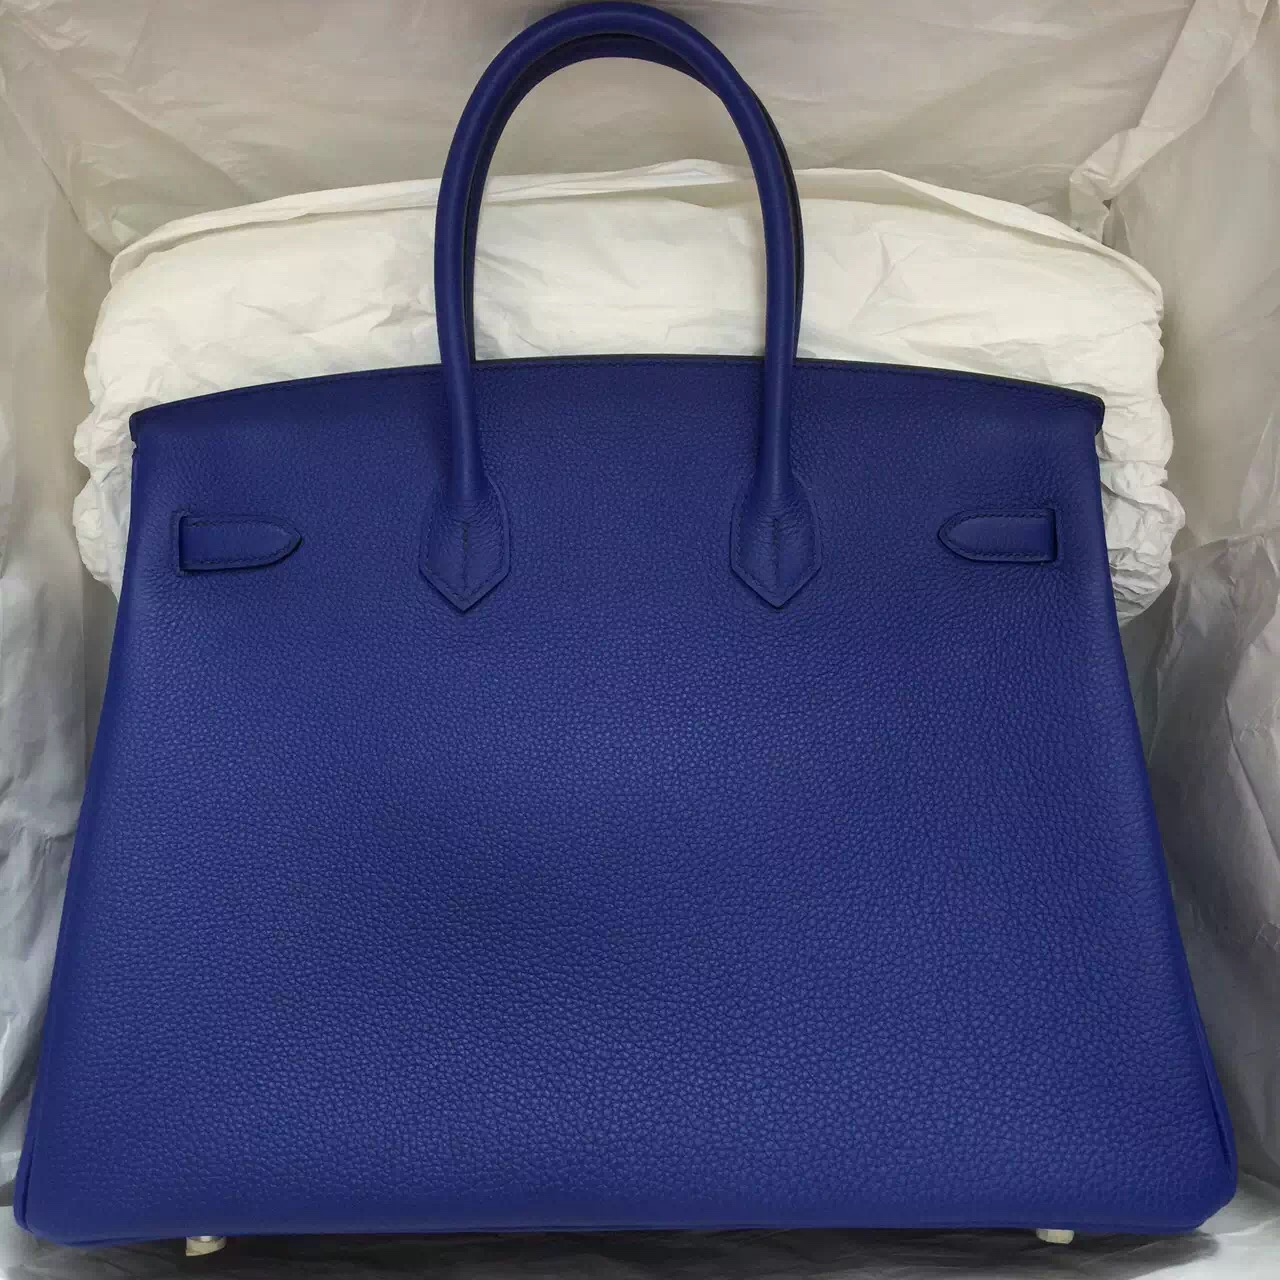 Discount Hermes Togo Leather Birkin Bag in 7T Blue Electric Silver & Gold Hardware 35CM